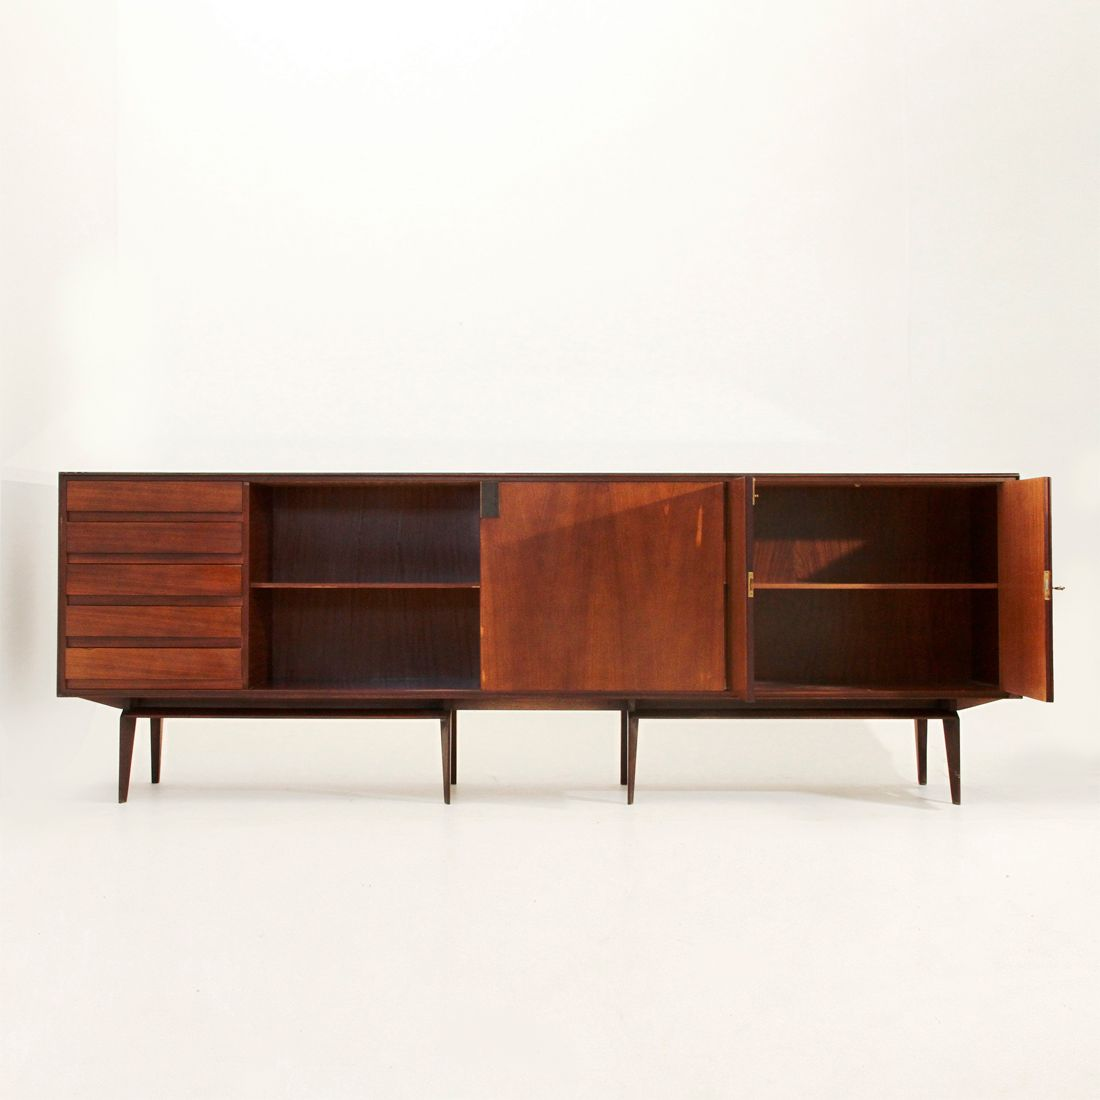 Palisander sideboard by edmondo palutari for dassi 1950s for Sideboard 2 m breit